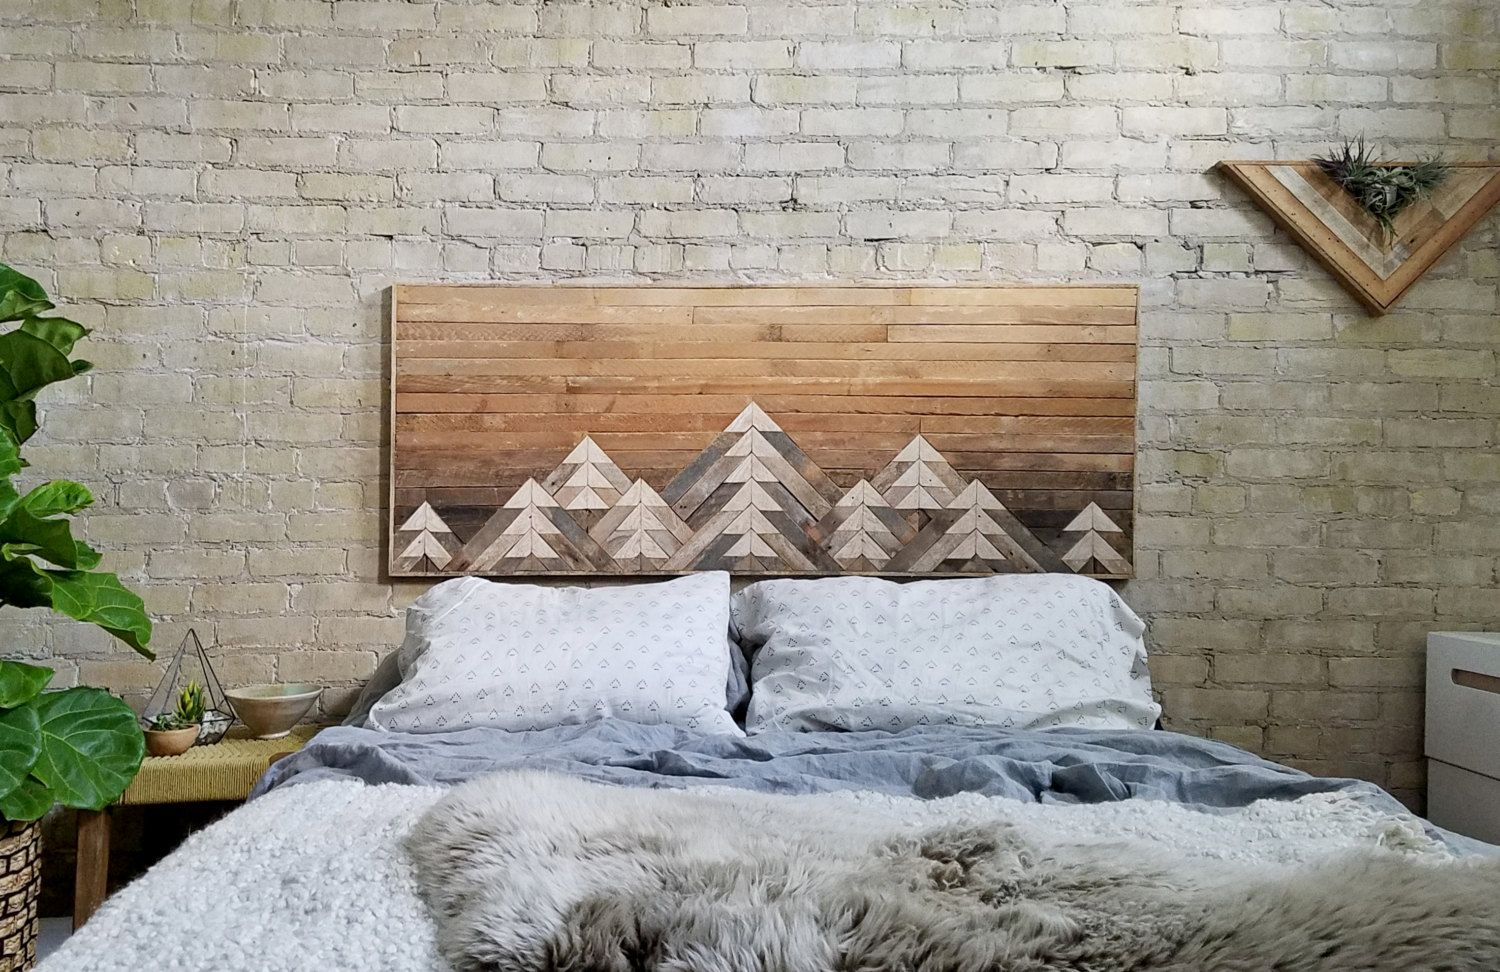 This one of a kind wall art is made from reclaimed lath wood the